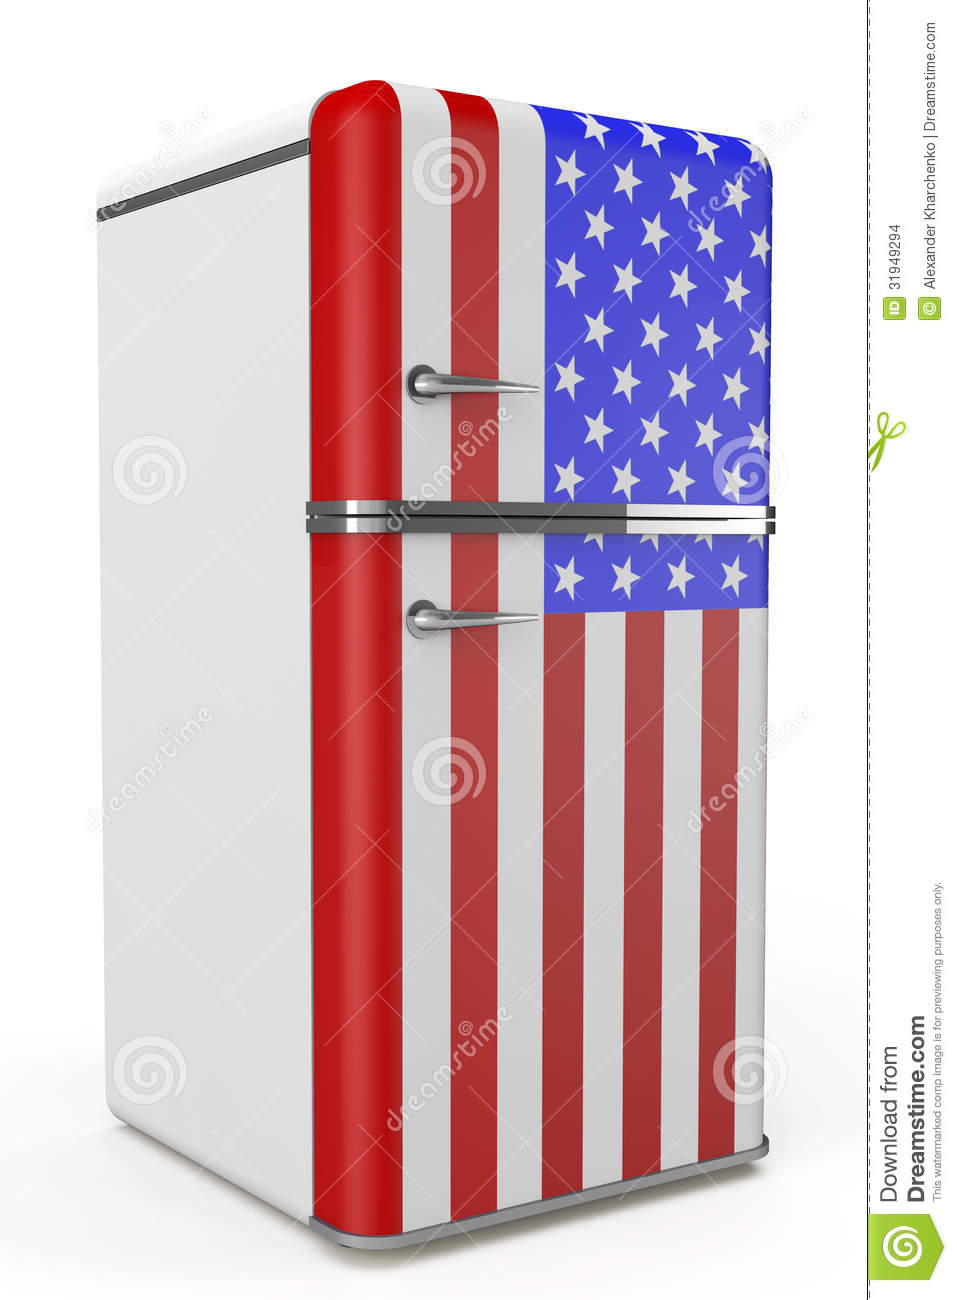 retro k hlschrank mit der usa flagge auf der t r stockbilder bild 31949294. Black Bedroom Furniture Sets. Home Design Ideas